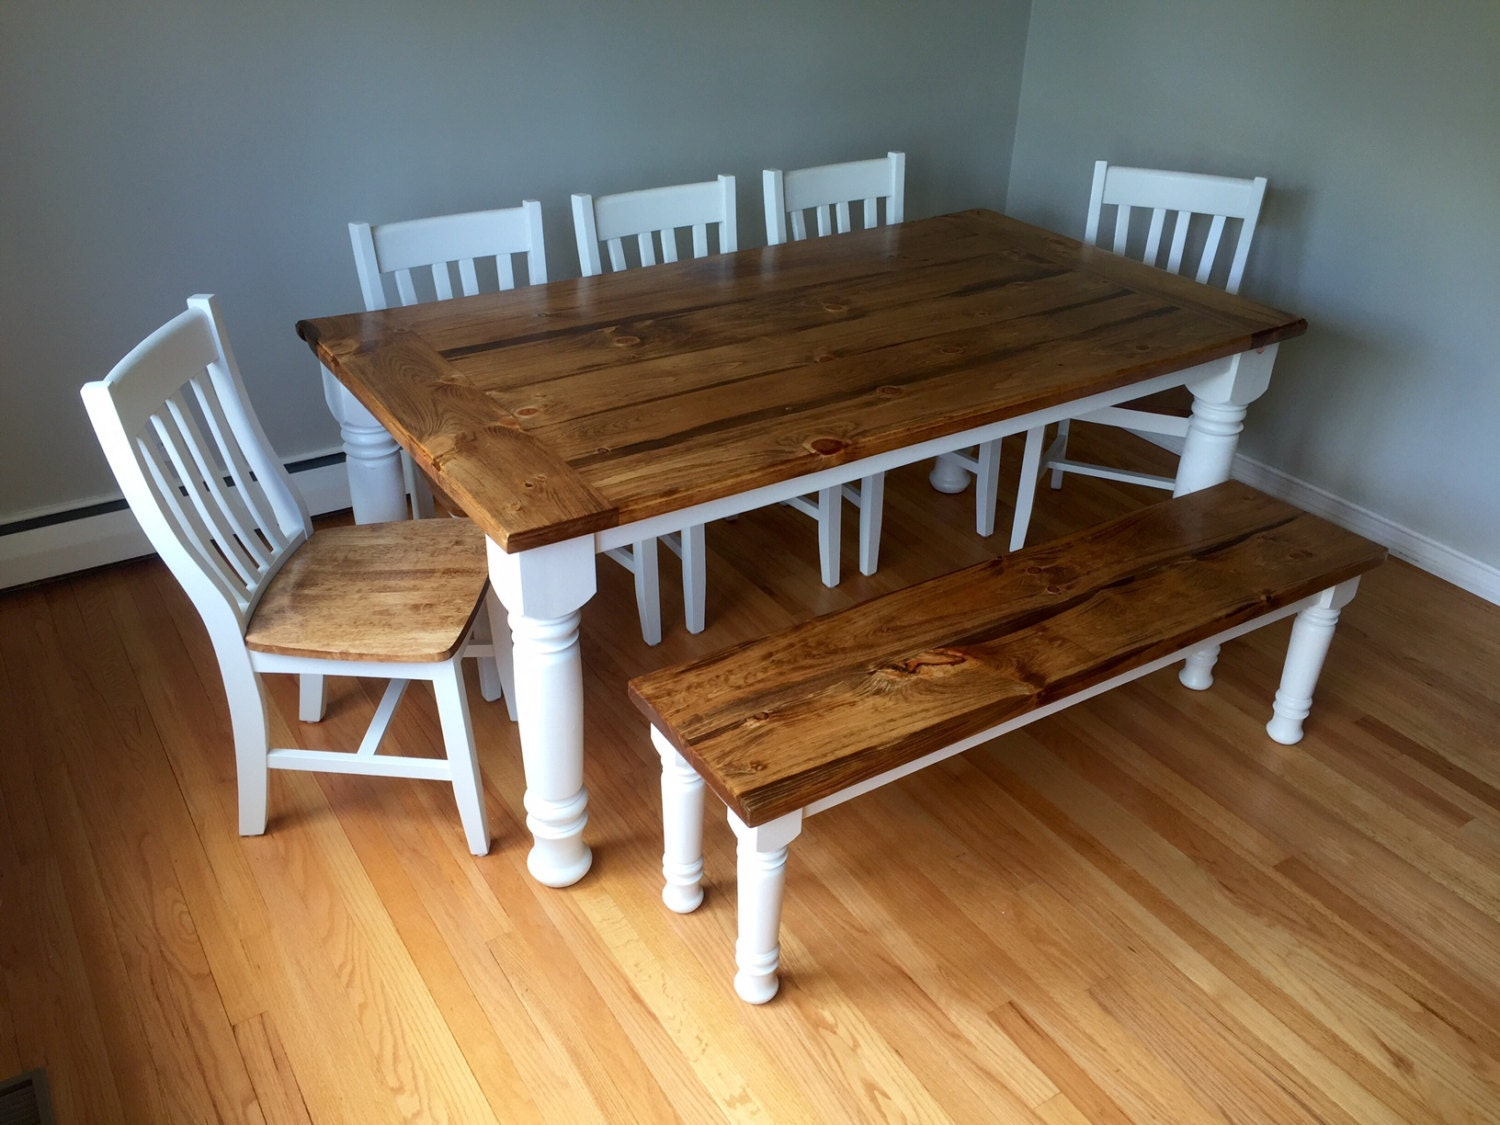 classic turned leg farmhouse dining table